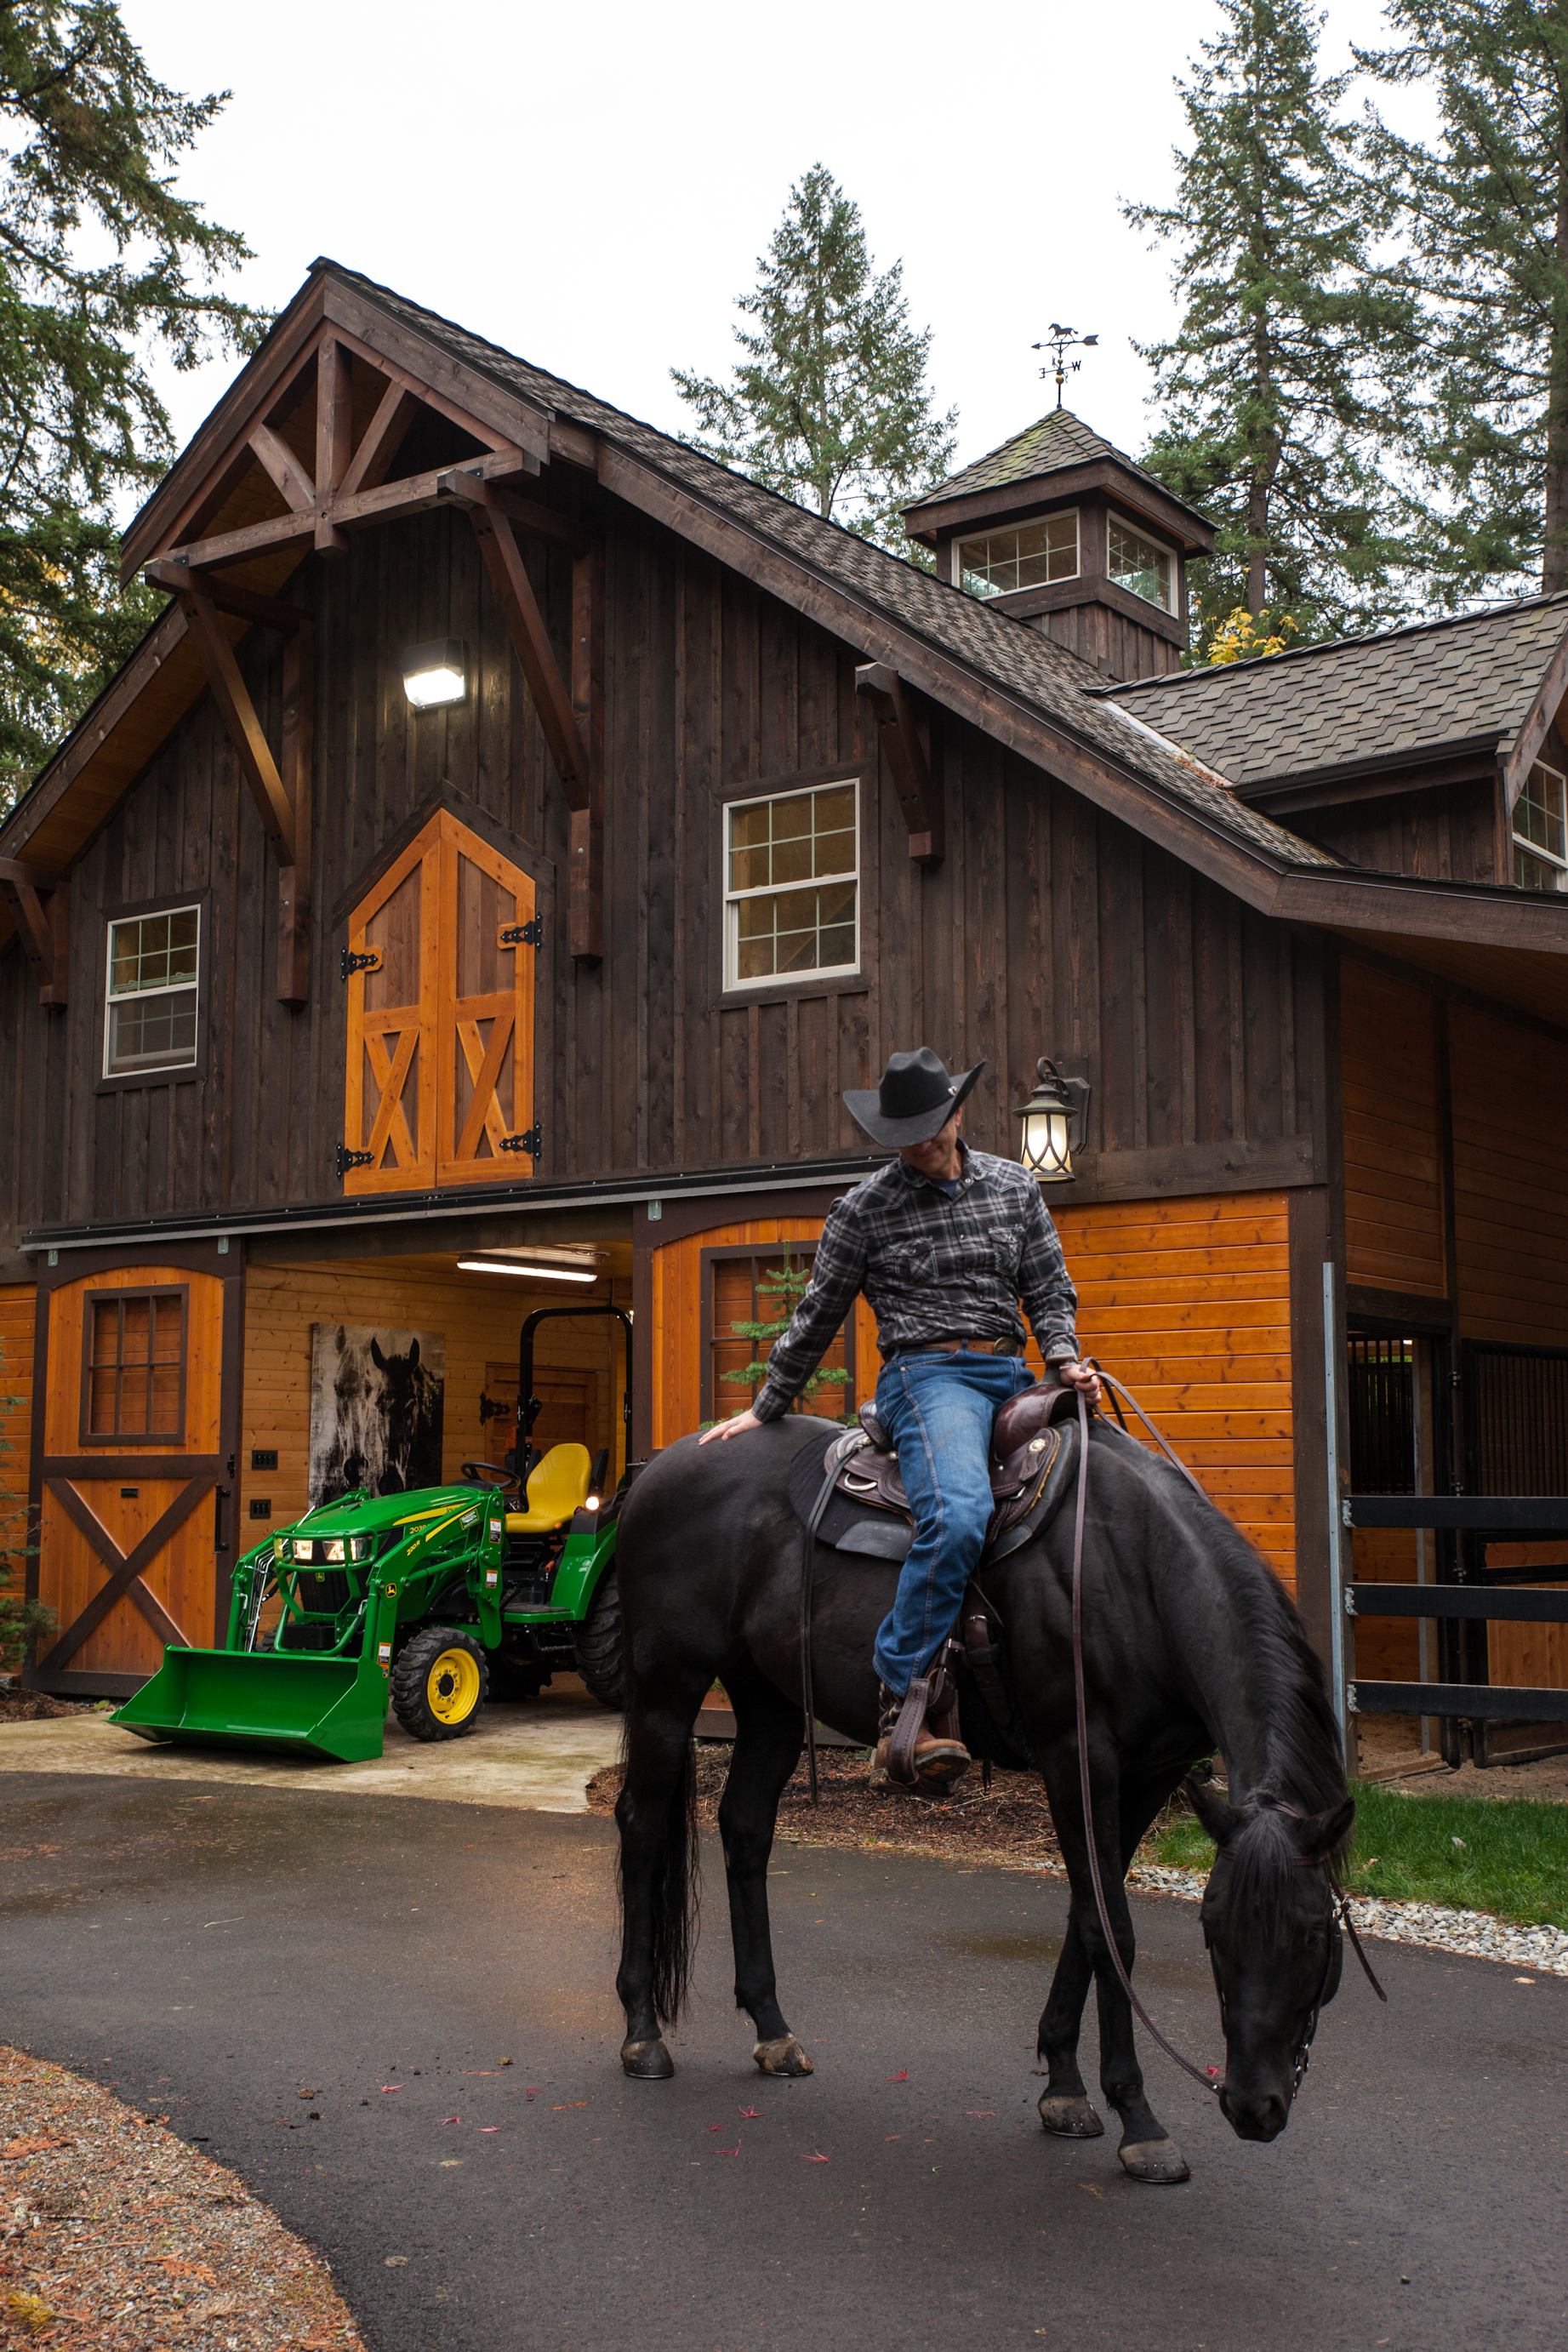 Two of Patrick's favorite places, riding his horse and being at his 'smart barn.'